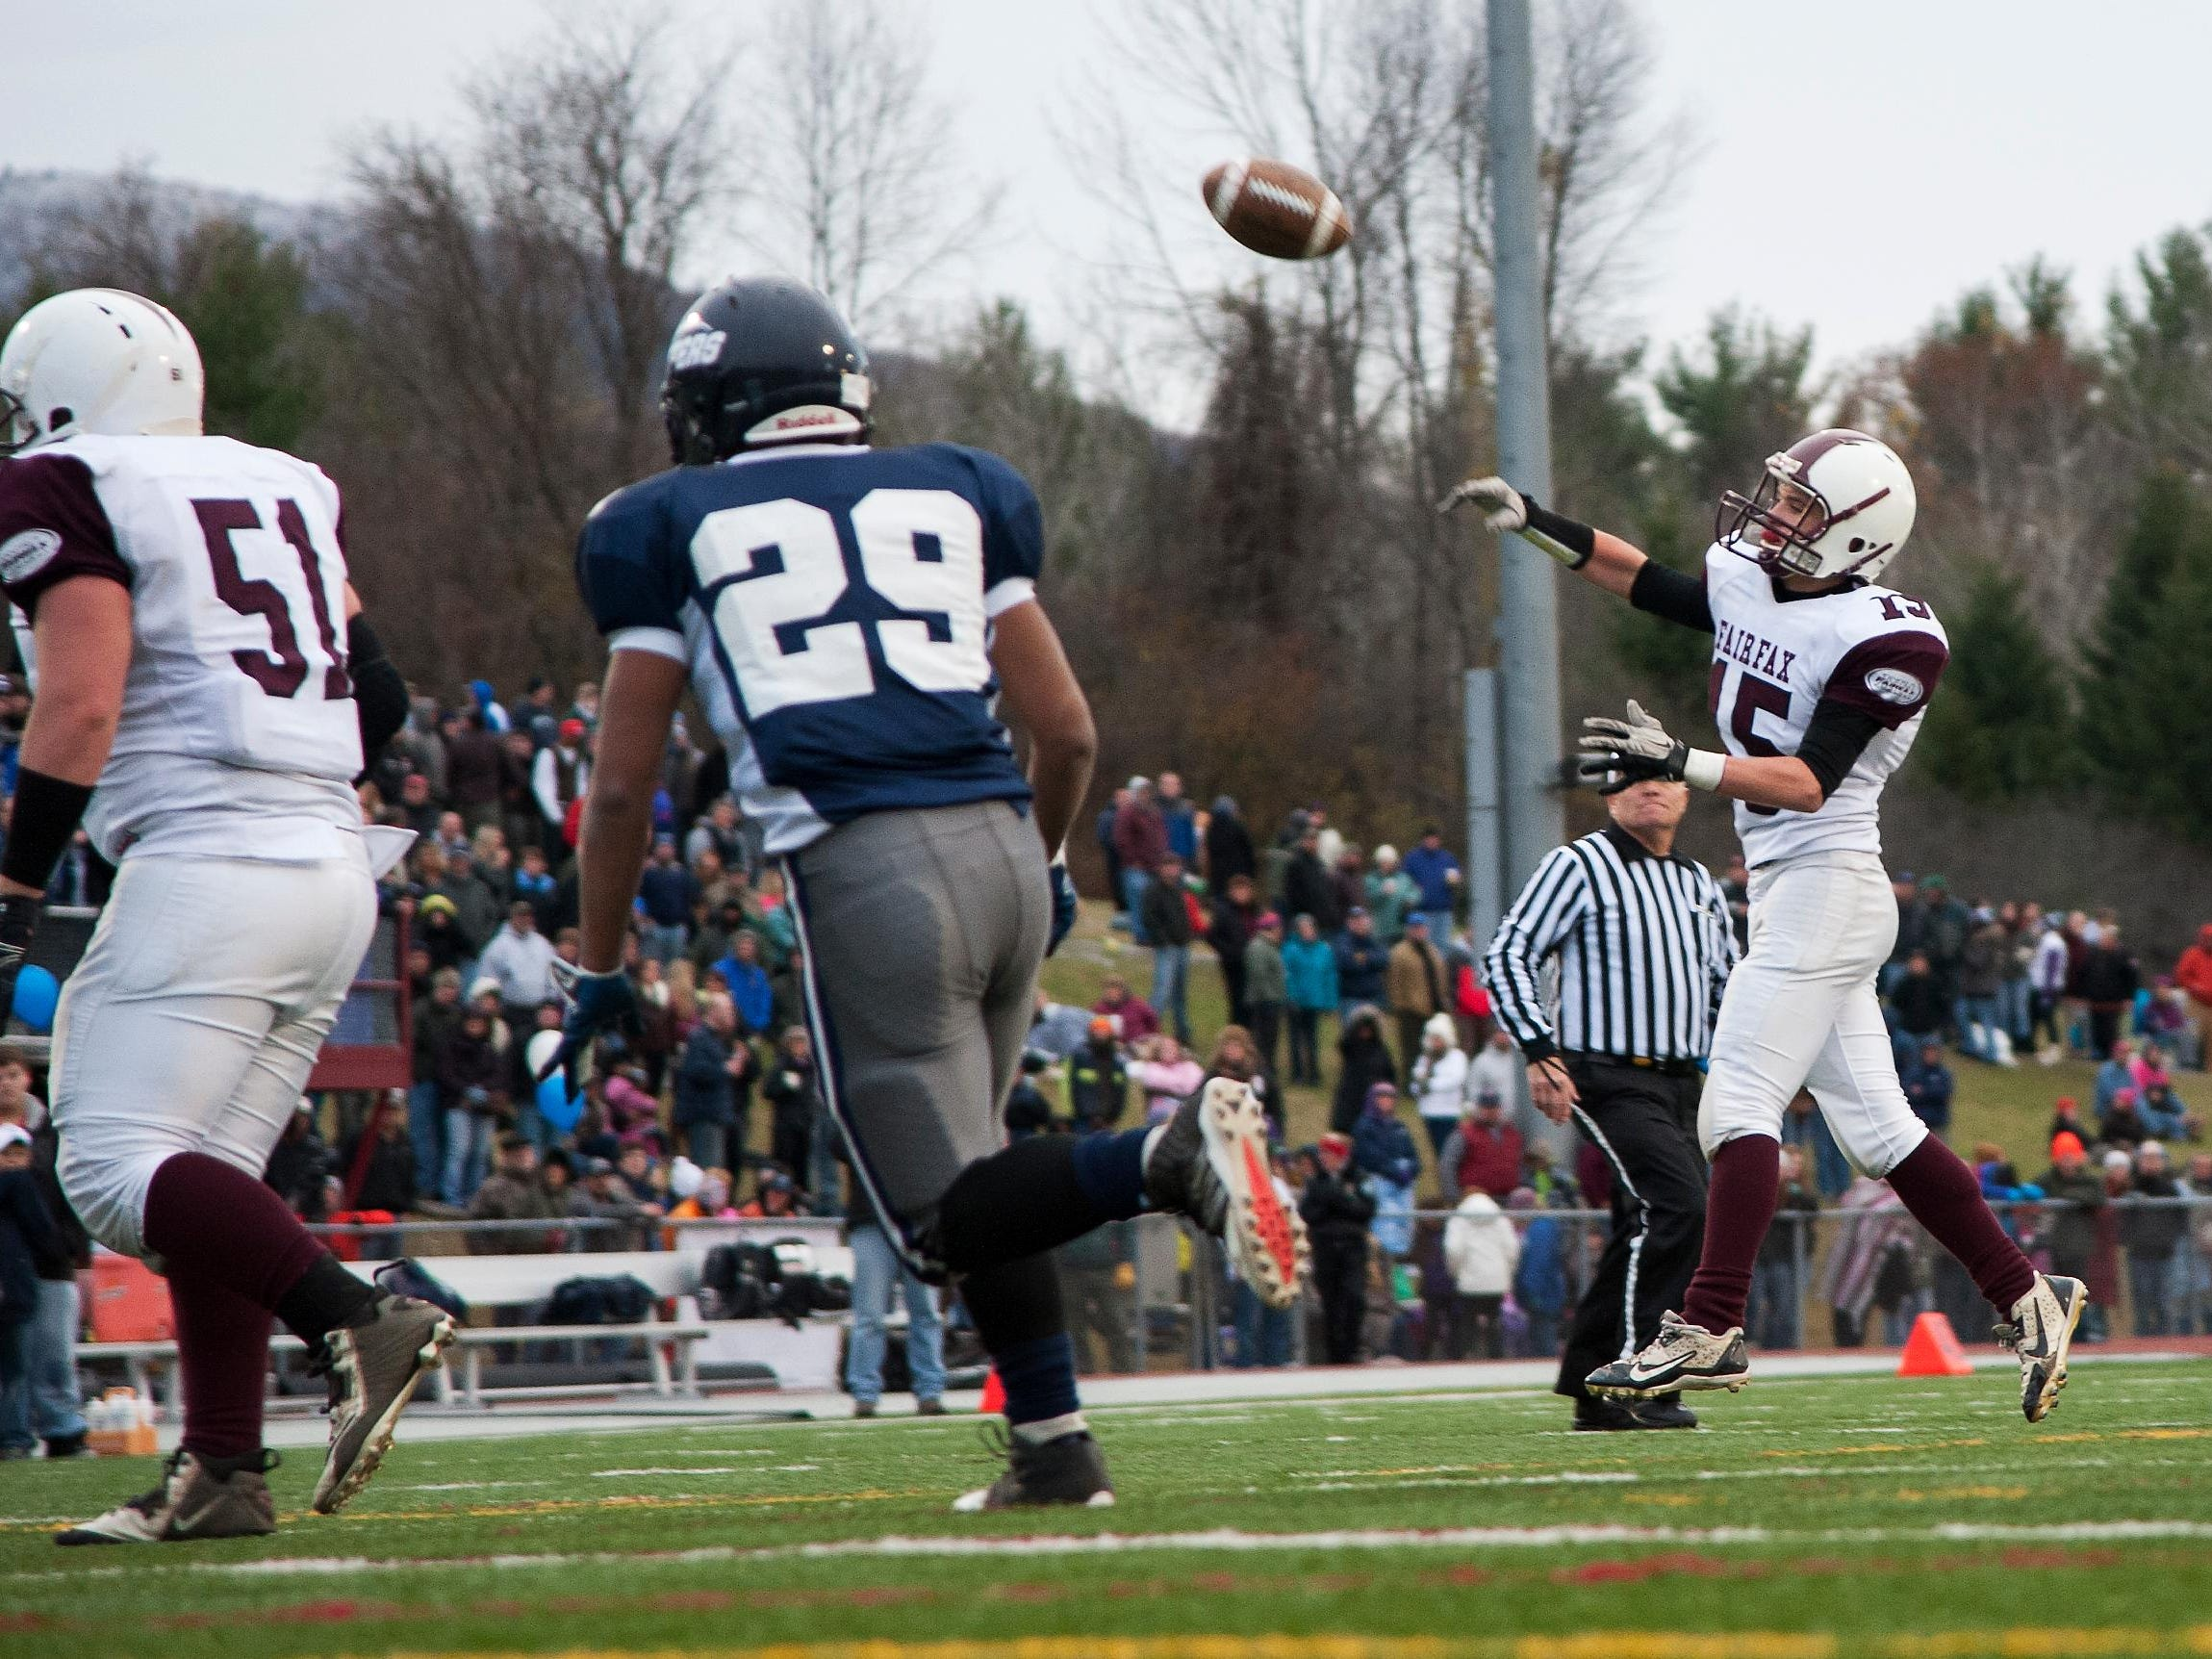 Fairfax quarterback Dylan Lumbra, seen in last year's Division III title game, helped the Bullets win their 2015 opener on Saturday vs. Spaulding